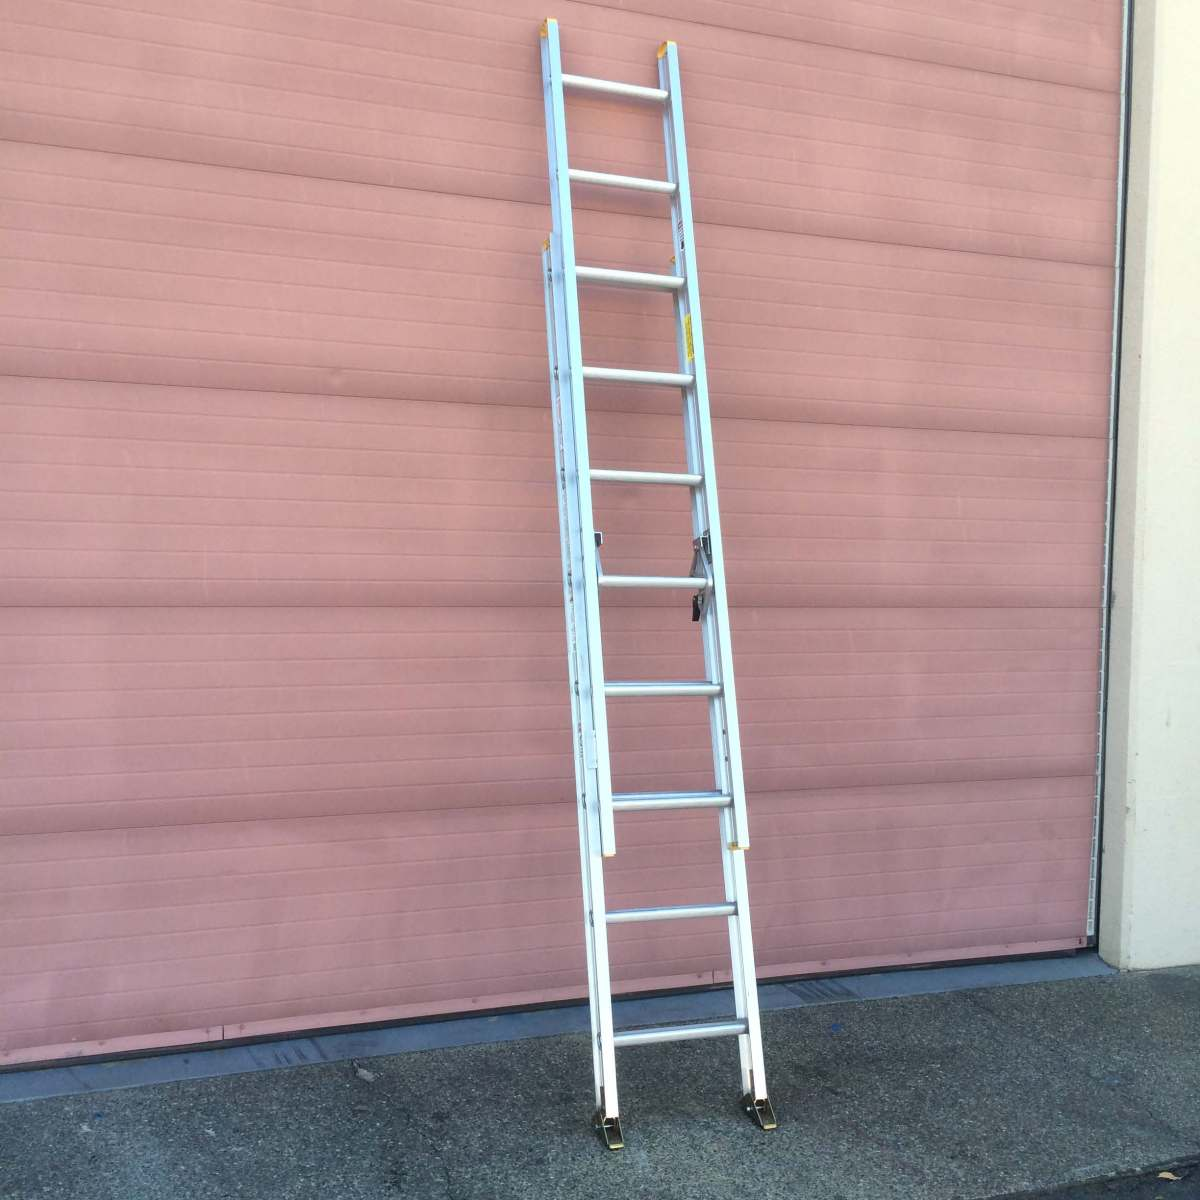 Extension Ladder Sacramento, Extension Ladders Sacramento, Extension Ladders Oakland, Extension Ladders San Francisco, Extension Ladders San Jose